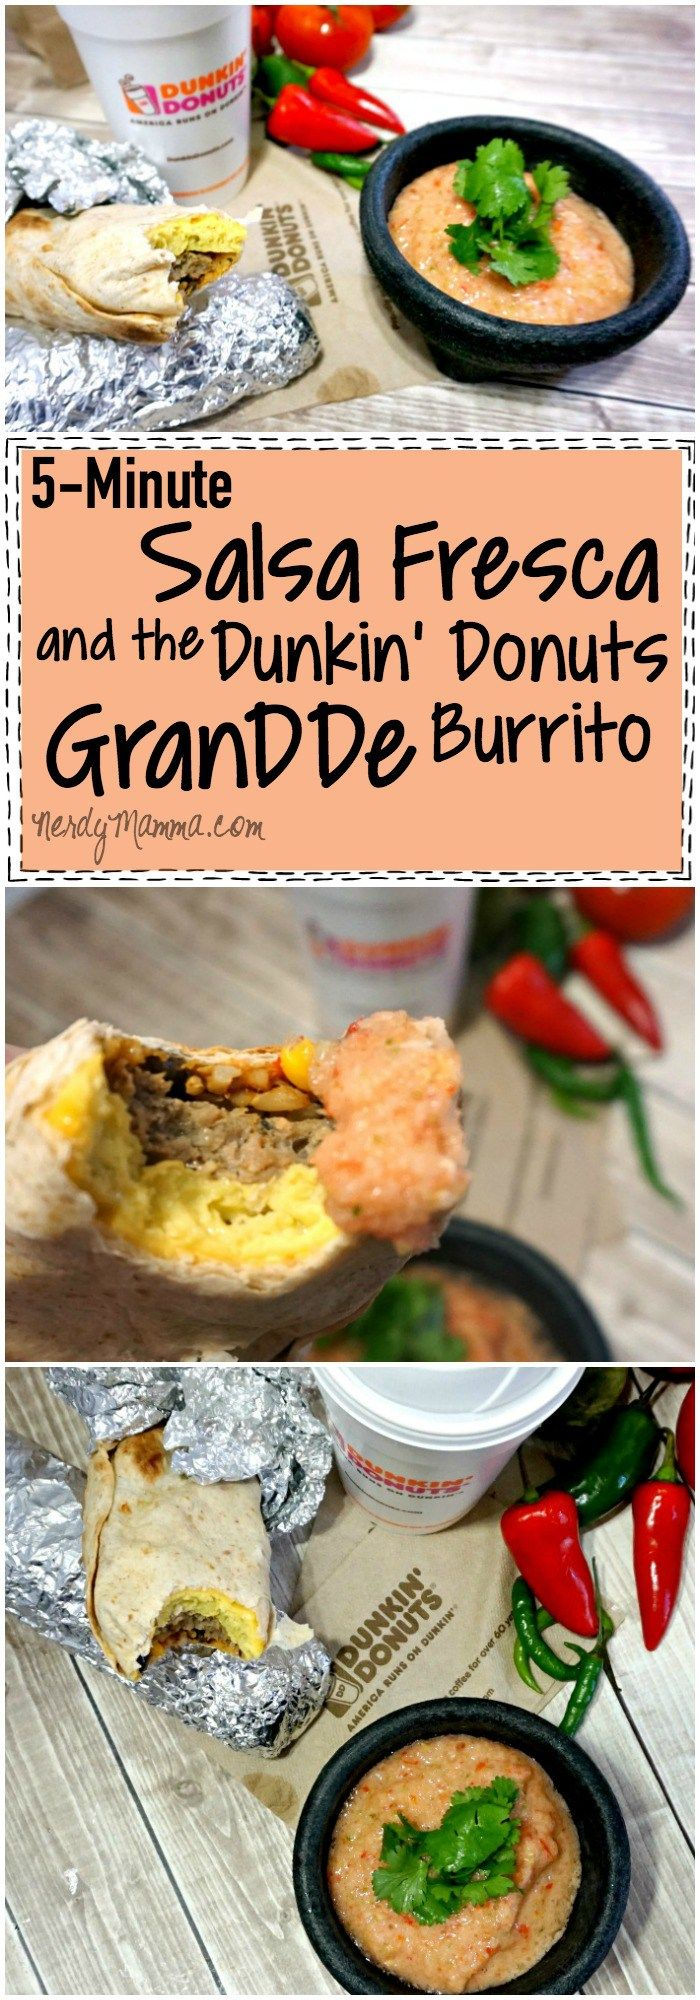 I love this 5-minute recipe for Salsa Fresca...and pairing it with the new Dunkin' Donuts GranDDe Burrito Genius! #ad